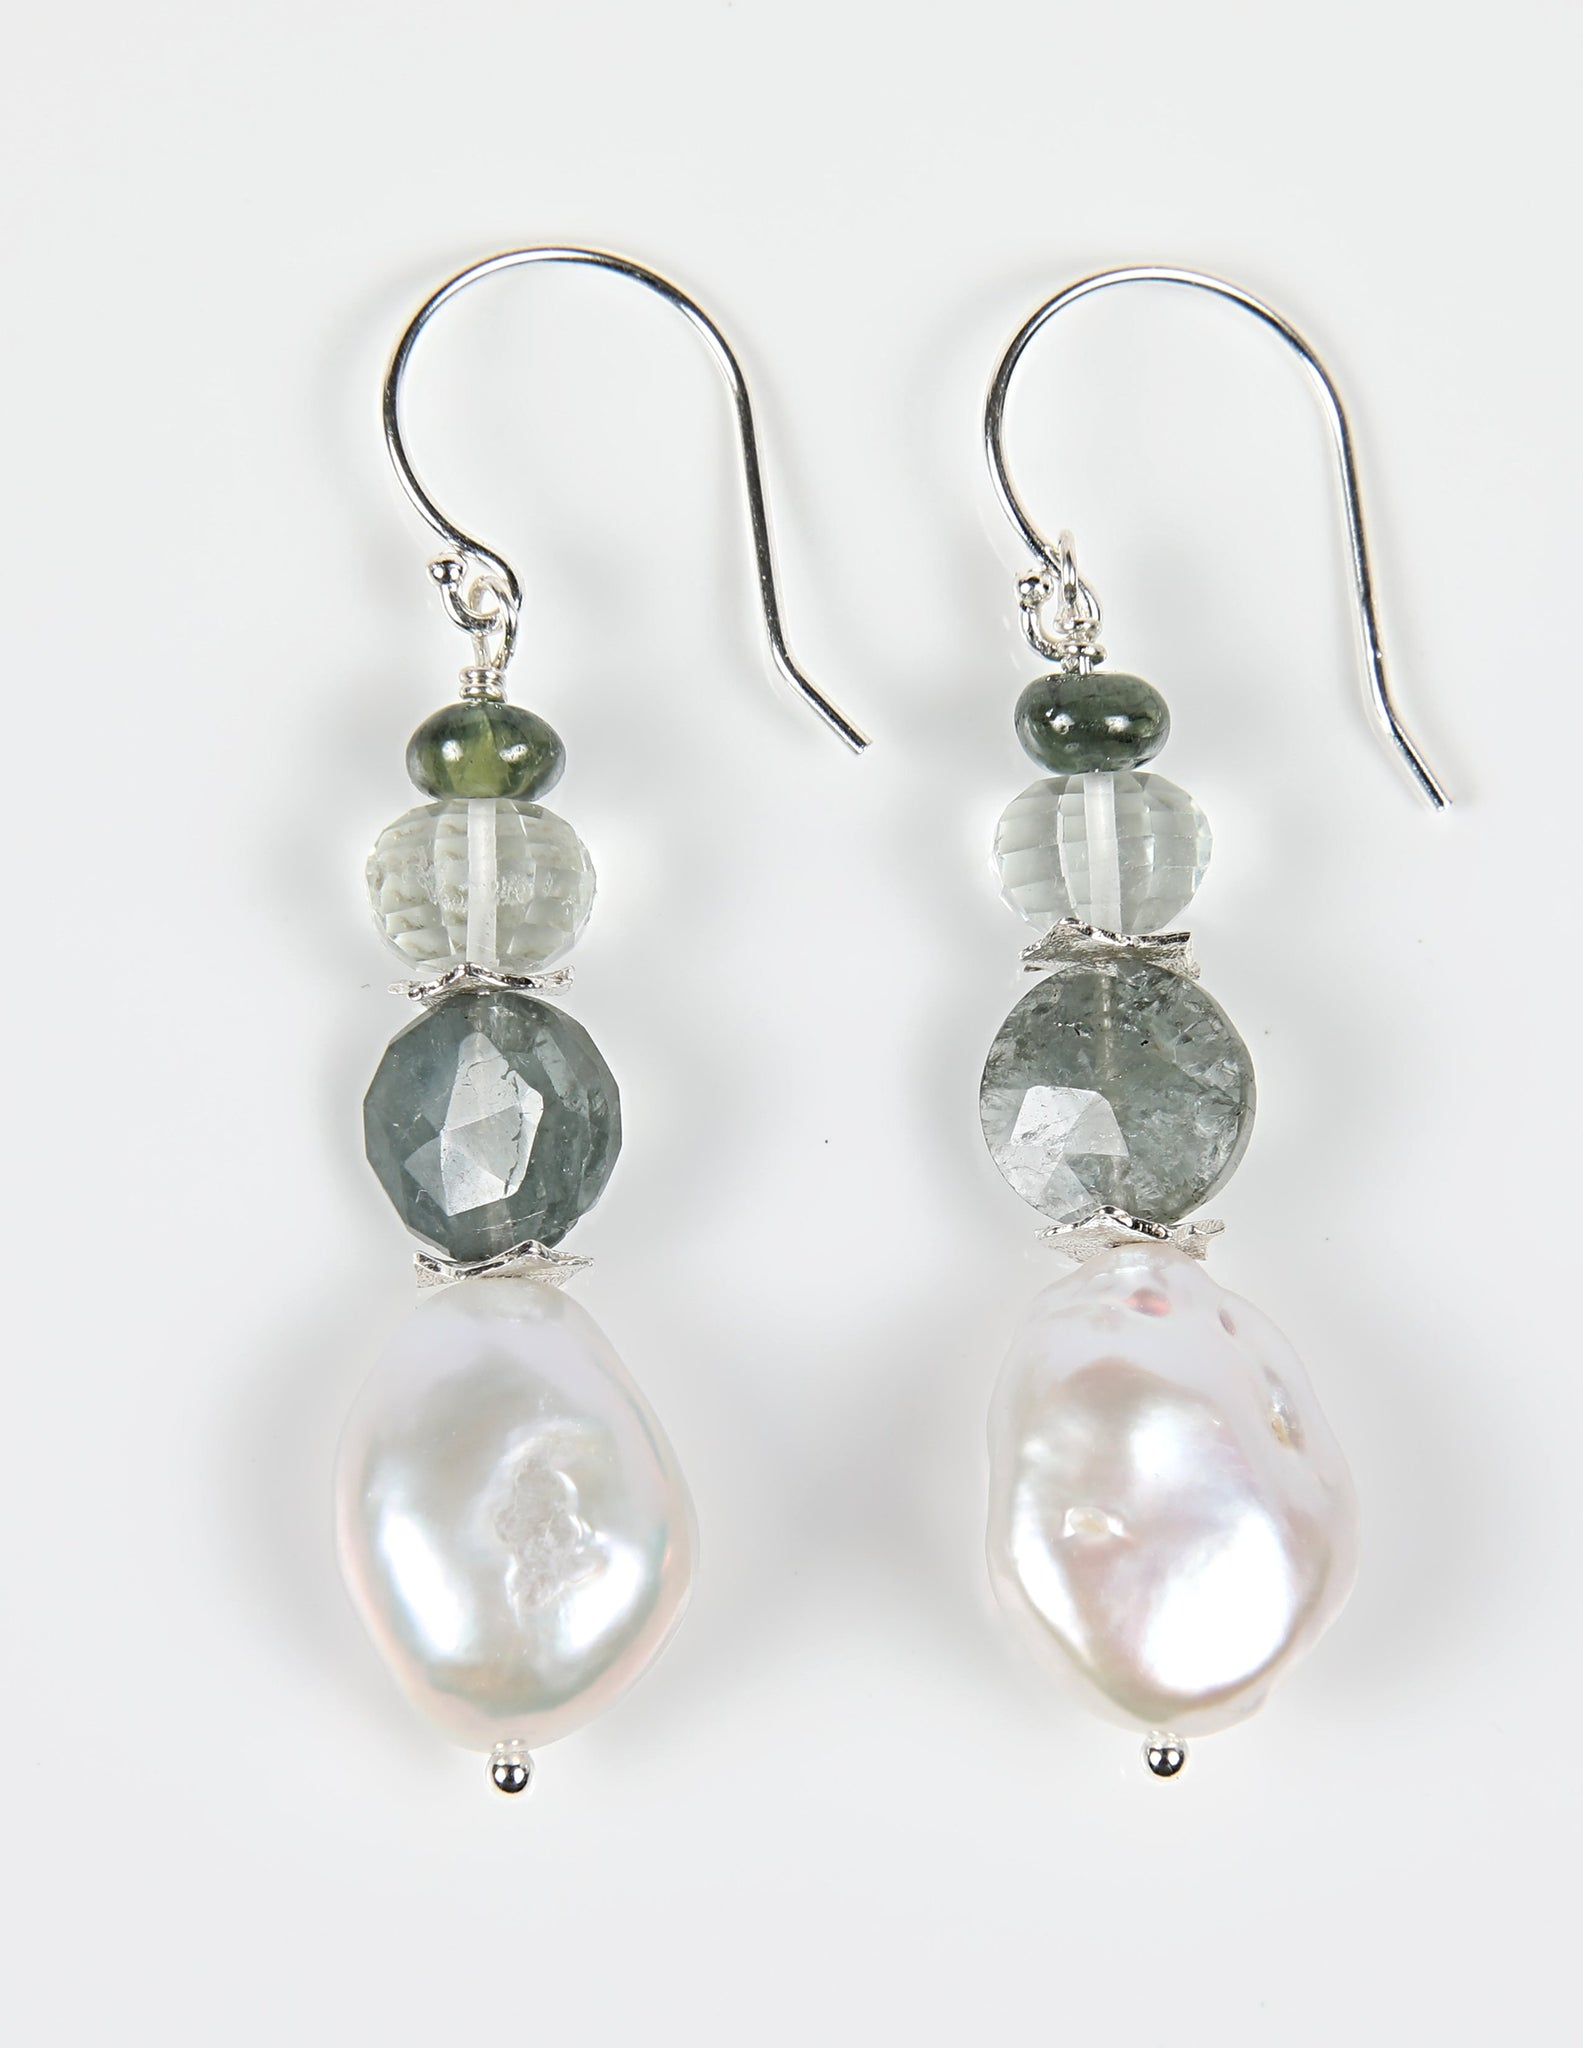 White Orchid Studios | Made in the USA | Handcrafted couture jewelry inspired by nature. |  White freshwater coin pearls combine with faceted moss aqua and carved prasiolite on sterling silver earwires for a cool, sense of a stream. $108